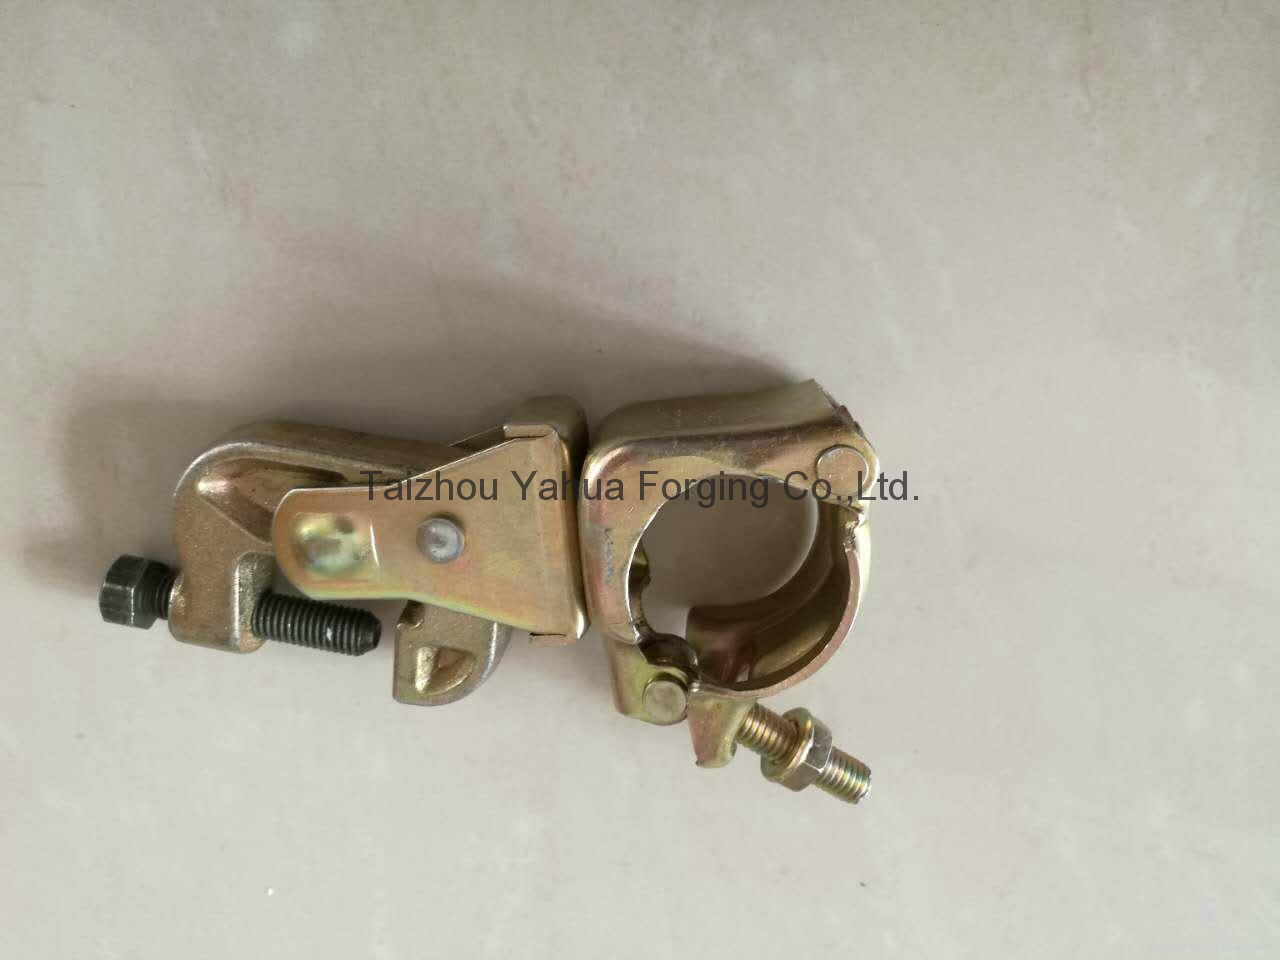 fixed girder clamp pressed